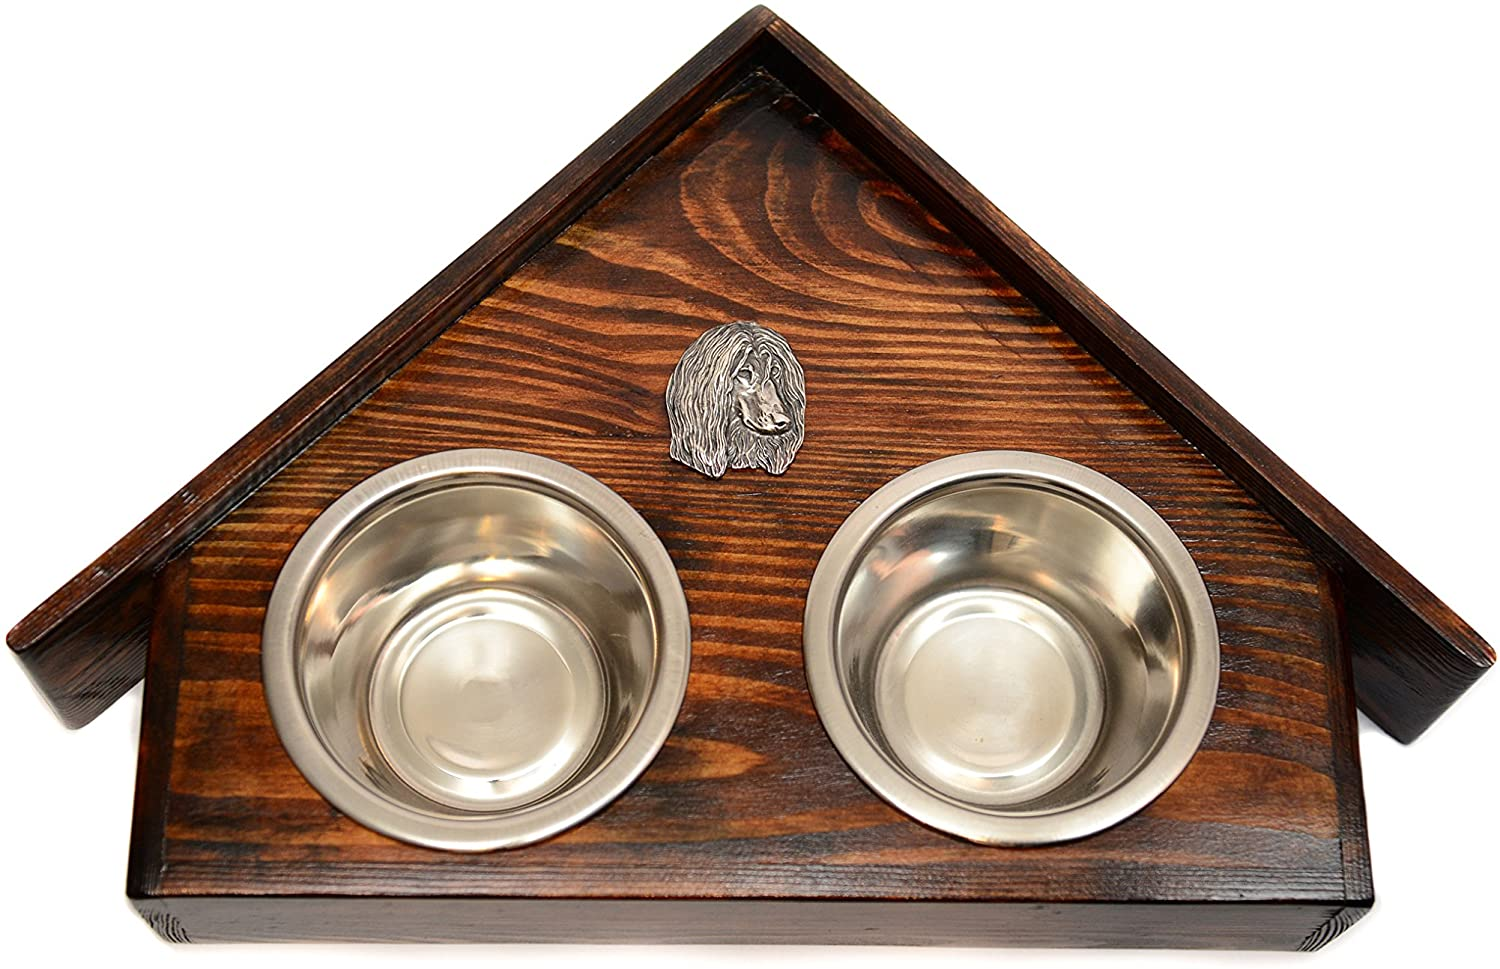 Afghan Hound, a Dogs Bowl with a Relief from ArtDog